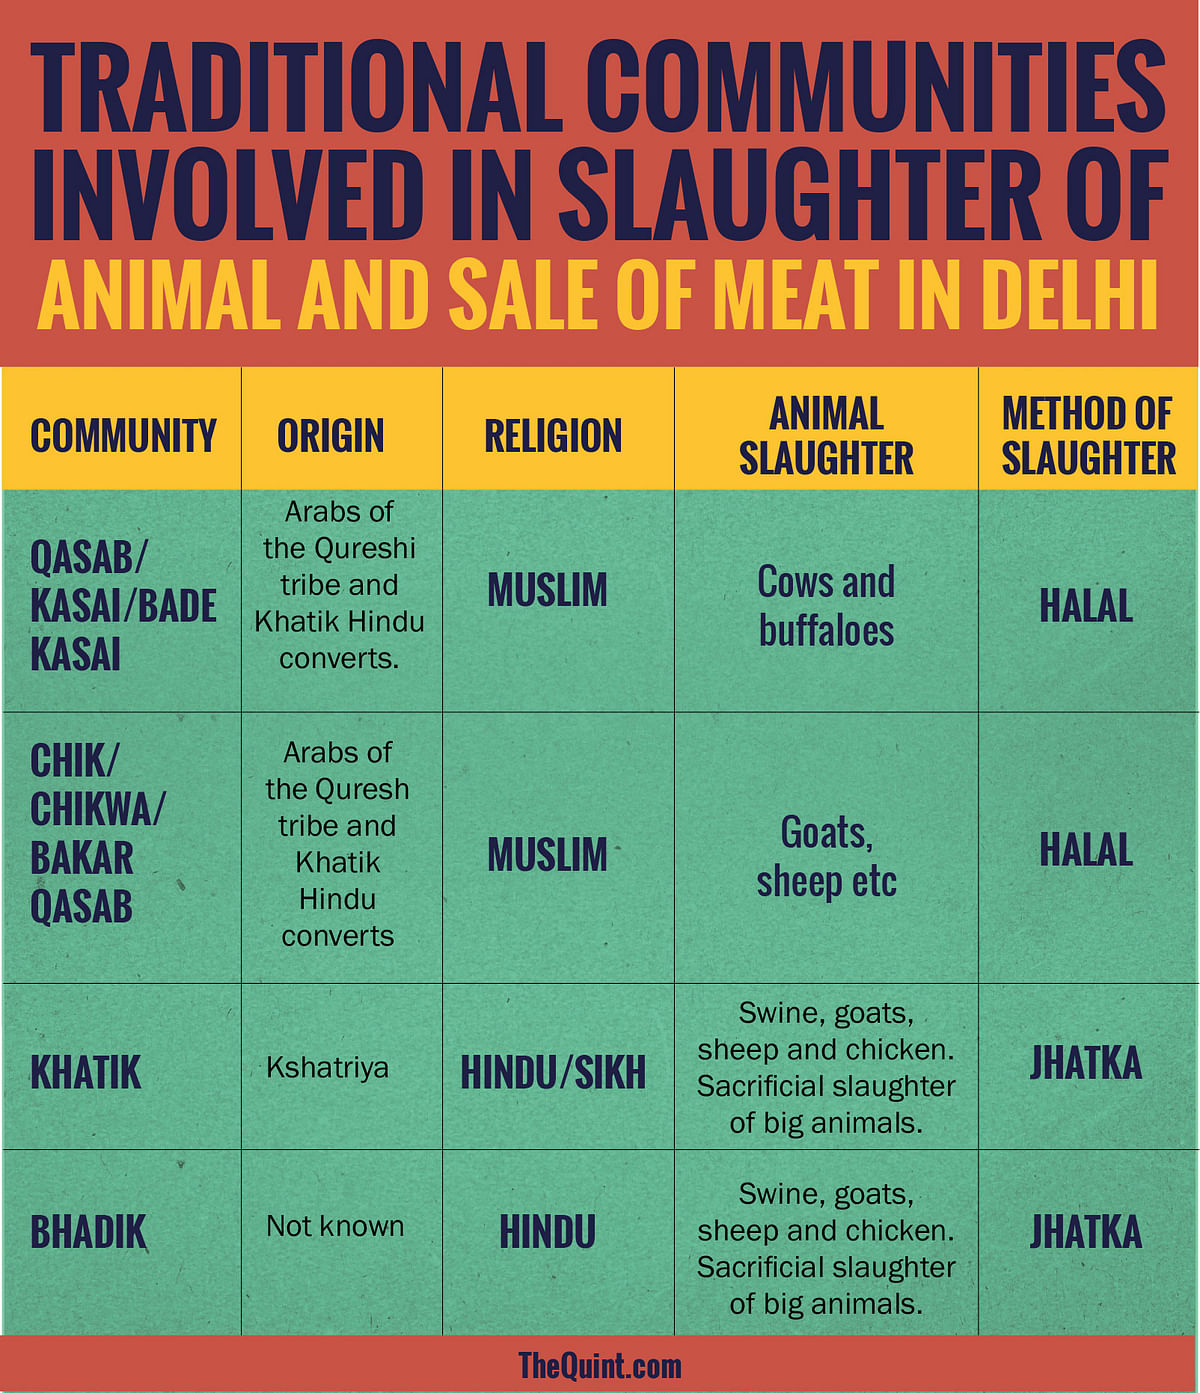 The role of different religious and regional caste groups, their origin, and the kind of slaughter of animals they perform. (Infographics: Rahul Gupta/<b>The Quint</b>)